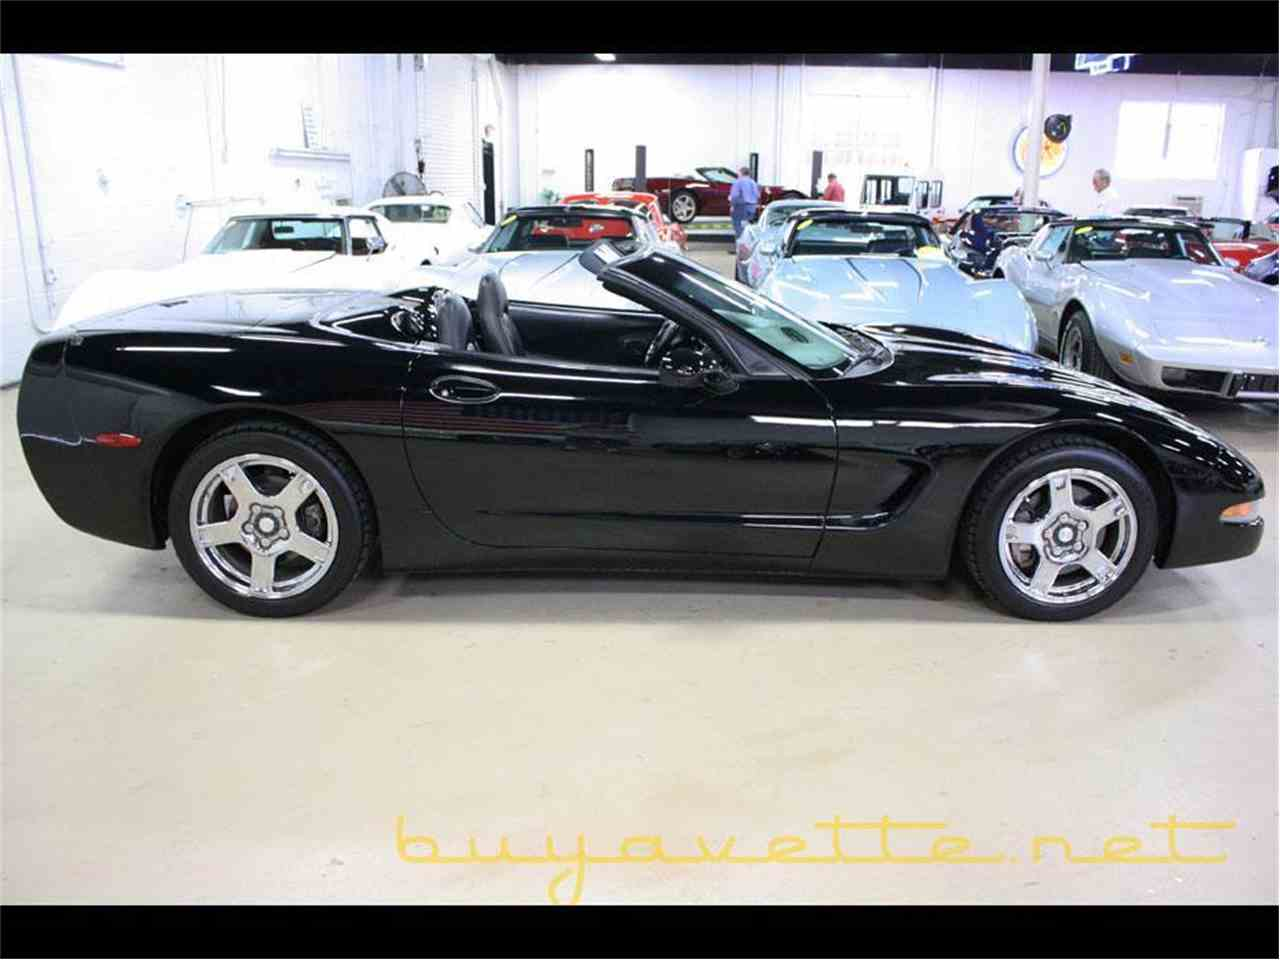 Large Picture of '99 Chevrolet Corvette - $13,999.00 Offered by Buyavette - C89P